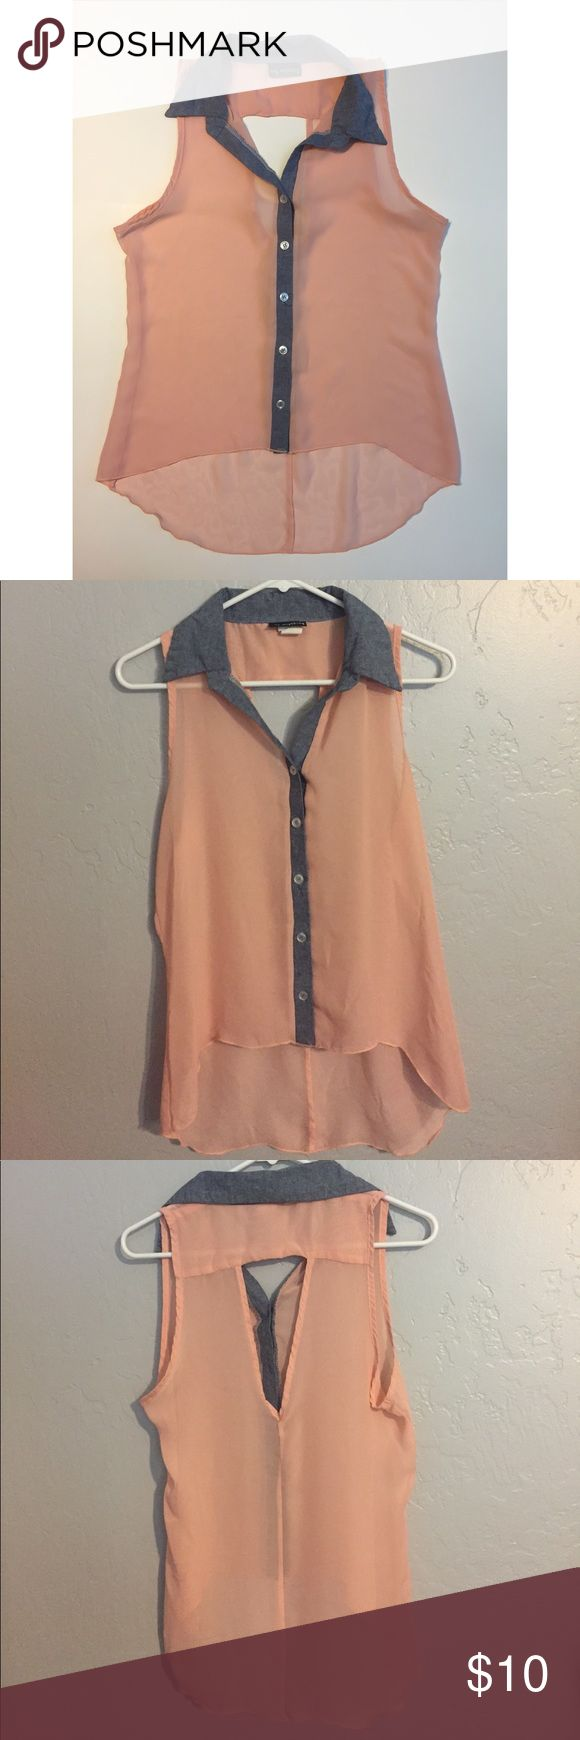 Sleeveless Top Sheer high-low top. Peachy color with denim collar and trim. Cut out in back. Perfect with a camisole or bandeau underneath! Only worn once! Size large. Tops Tank Tops